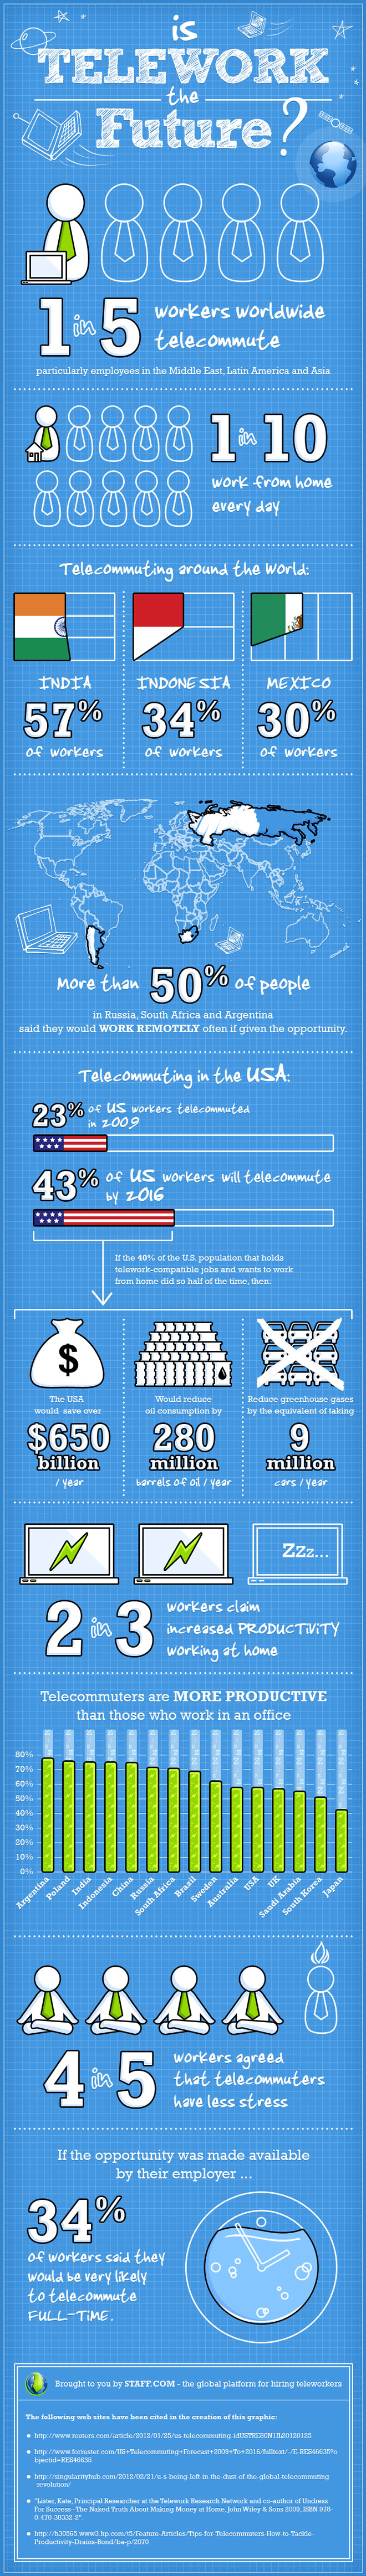 Is Telework the Future of Work? Infographic